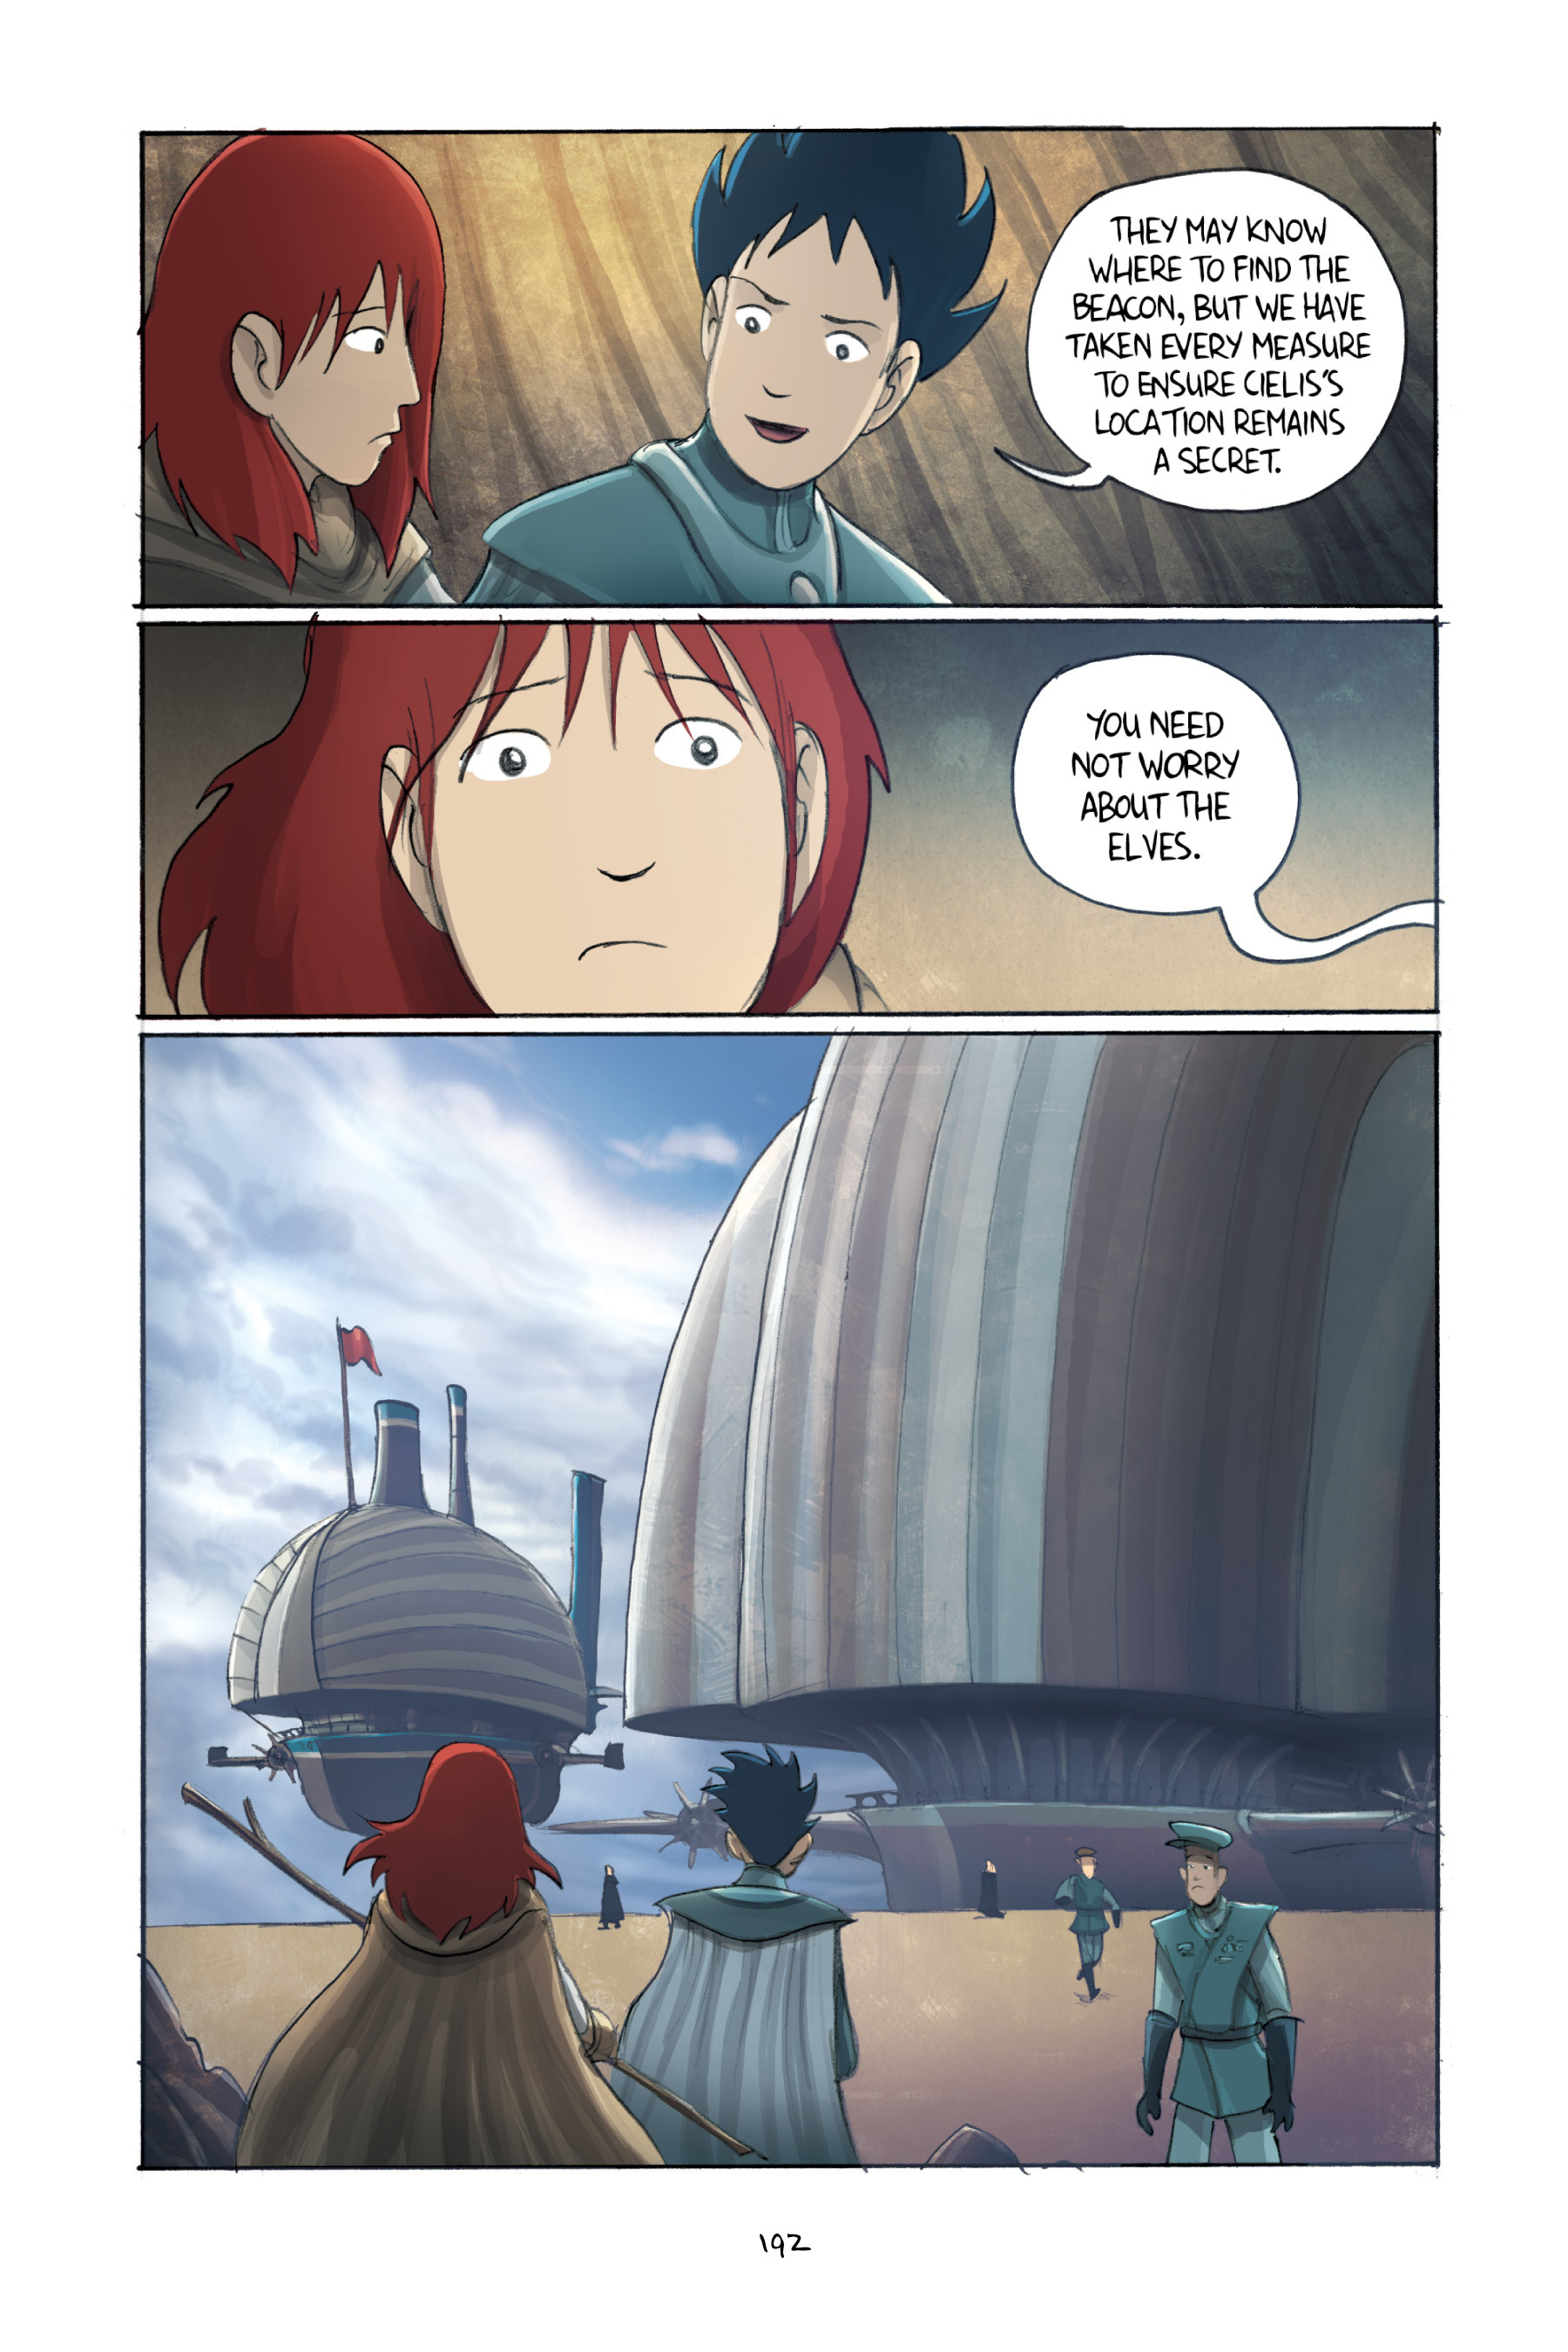 Read online Amulet comic -  Issue #3 - 188